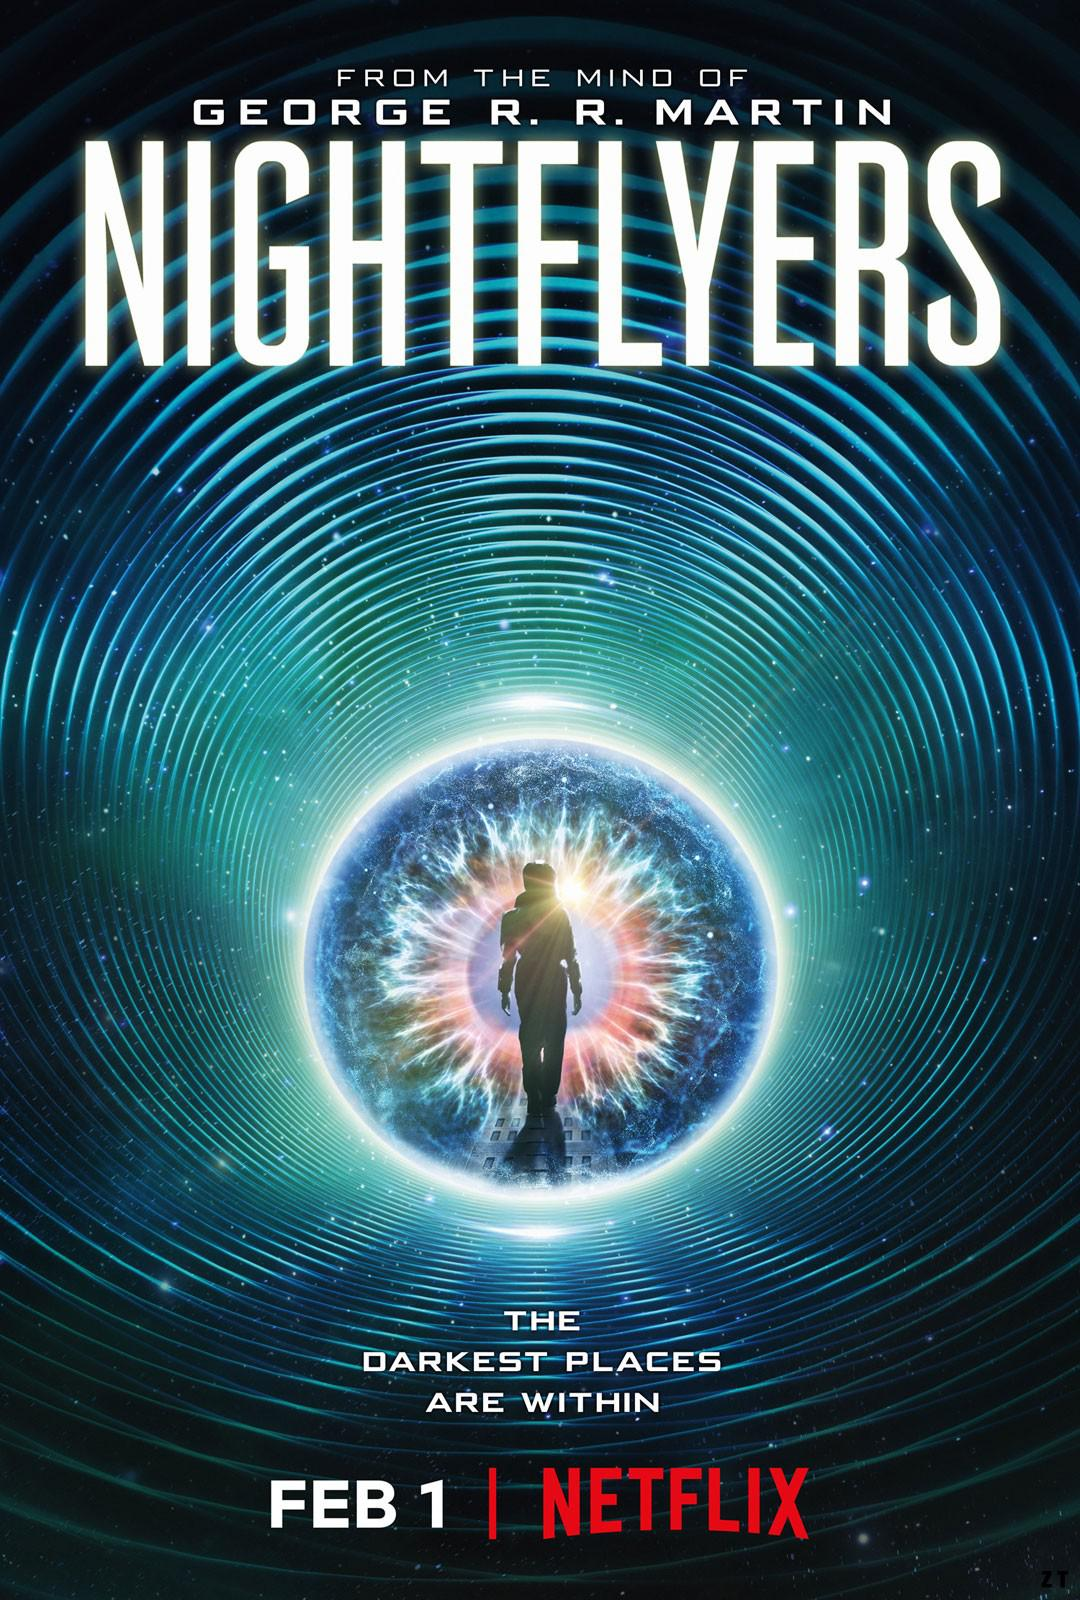 Telecharger Nightflyers- Saison 1 [COMPLETE] [10/10] FRENCH | Qualité Web-DL